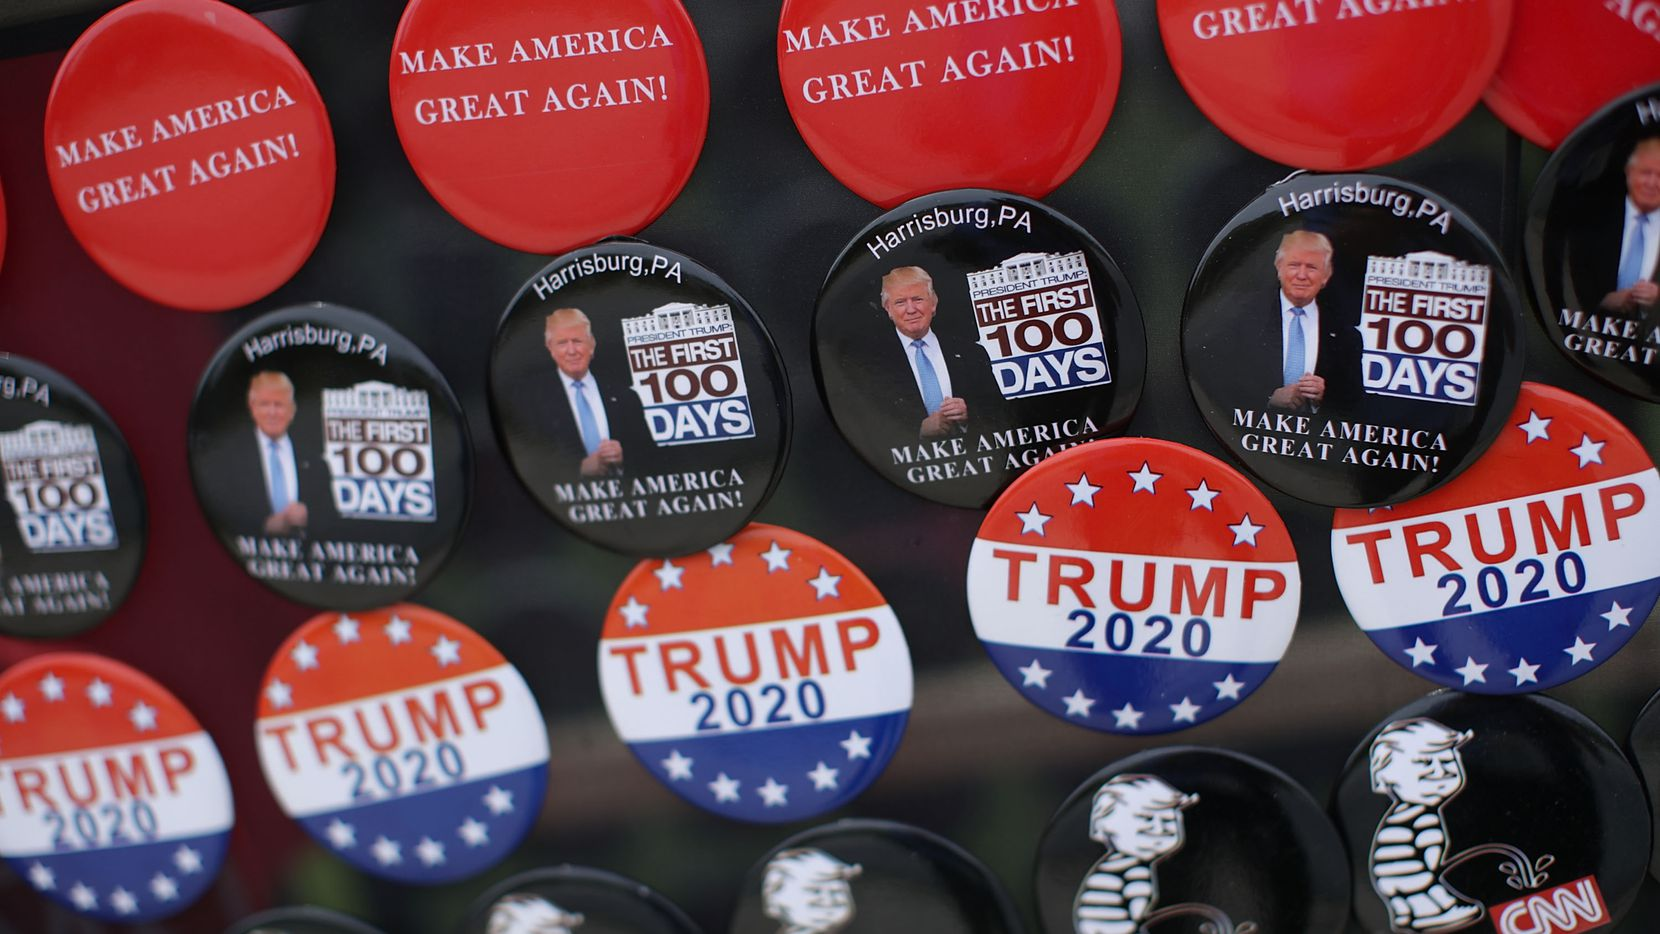 """Political buttons were on display at a street vendor outside the Pennsylvania Farm Show Complex & Expo Center prior to a """"Make America Great Again Rally"""" on April 29, 2017 in Harrisburg, Pa. President Donald Trump is holding a rally to mark his first 100 days of his presidency.  (Alex Wong/Getty Images)"""